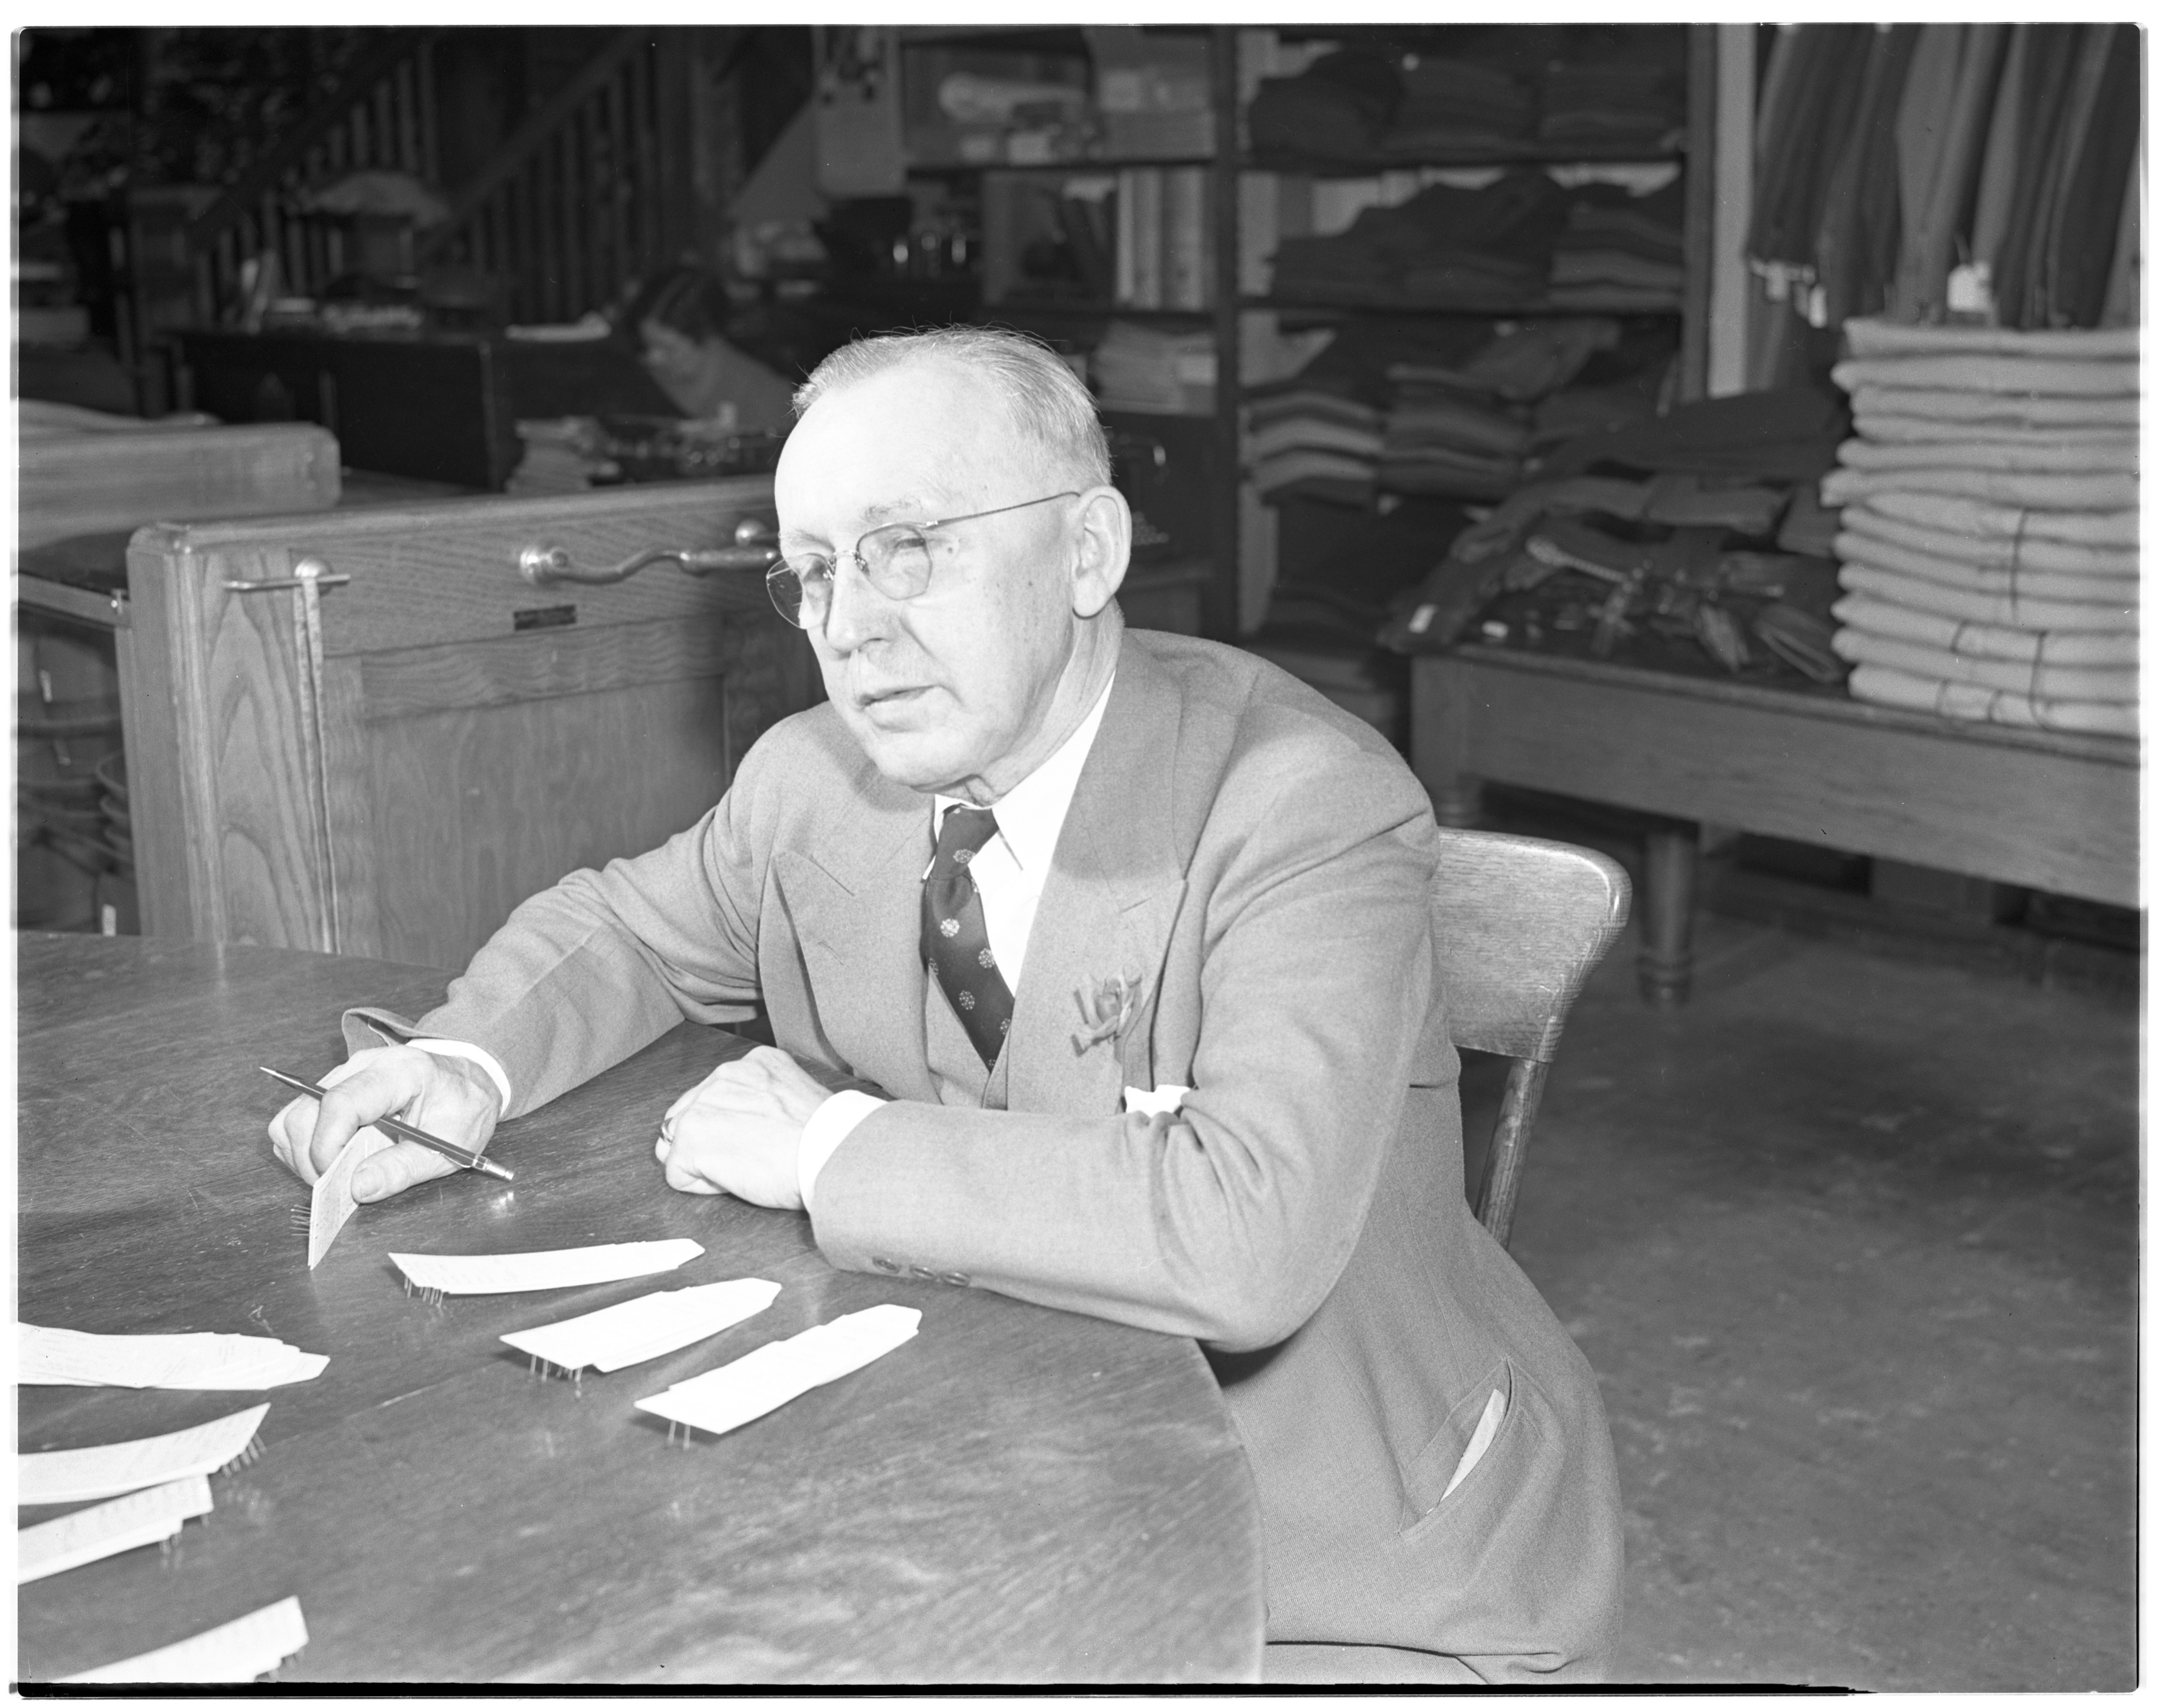 Albert Fiegel prepares price tags for Fiegel's 50th anniversary, September 1941 image